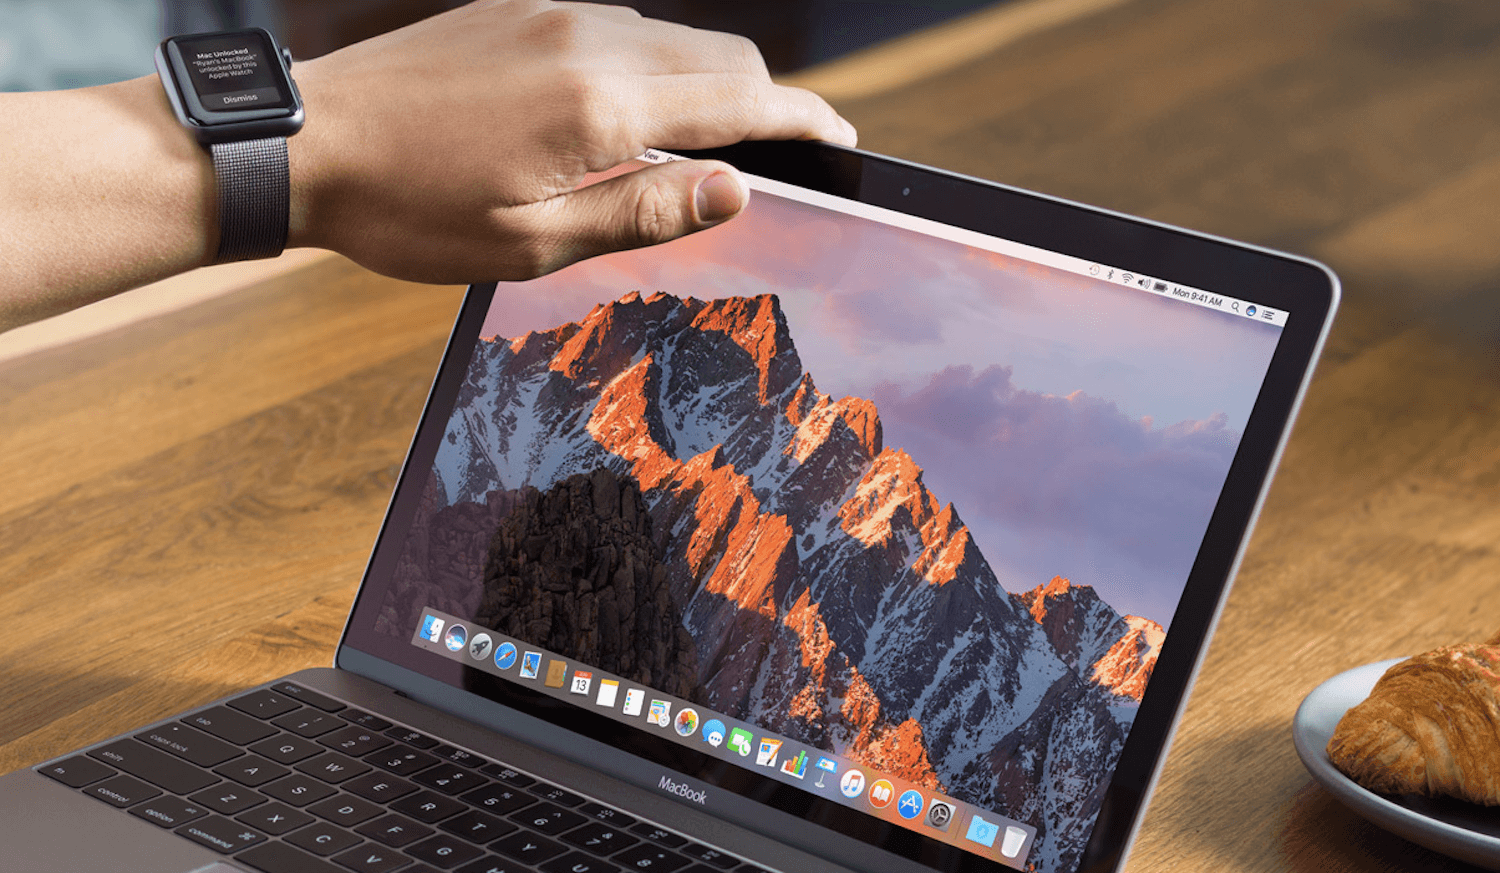 The expert has discovered a vulnerability in uploaded on MacOS programs